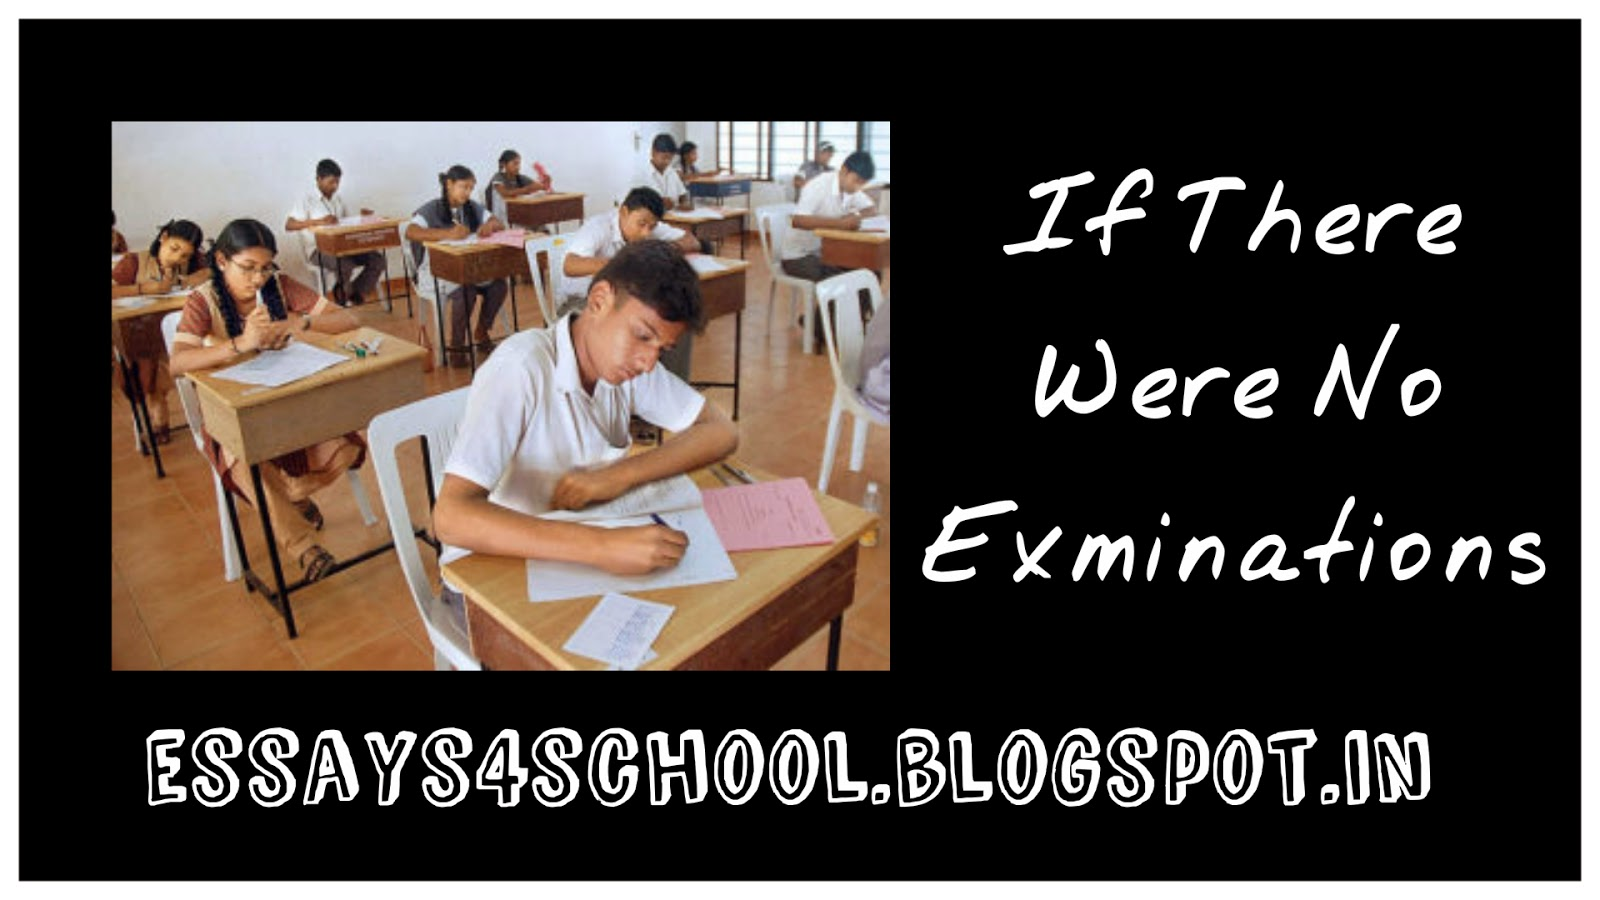 essay on if there were no examination essays 4 school what a wonderful and pleasant world it would be if examinations were wiped off once and for all from our education system